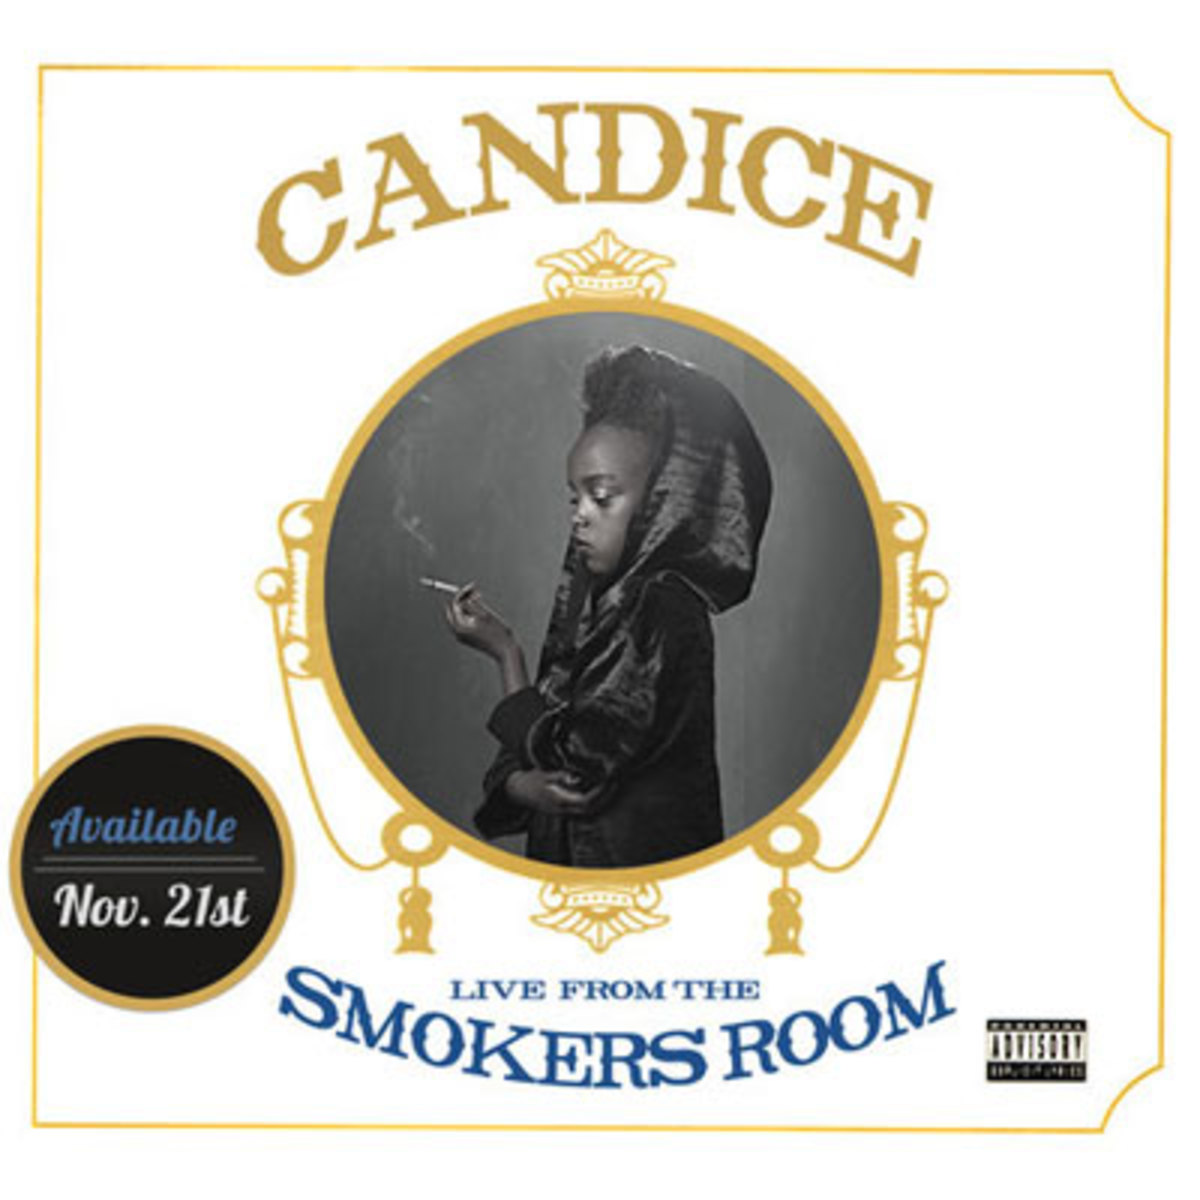 candice-livefromsmokers.jpg